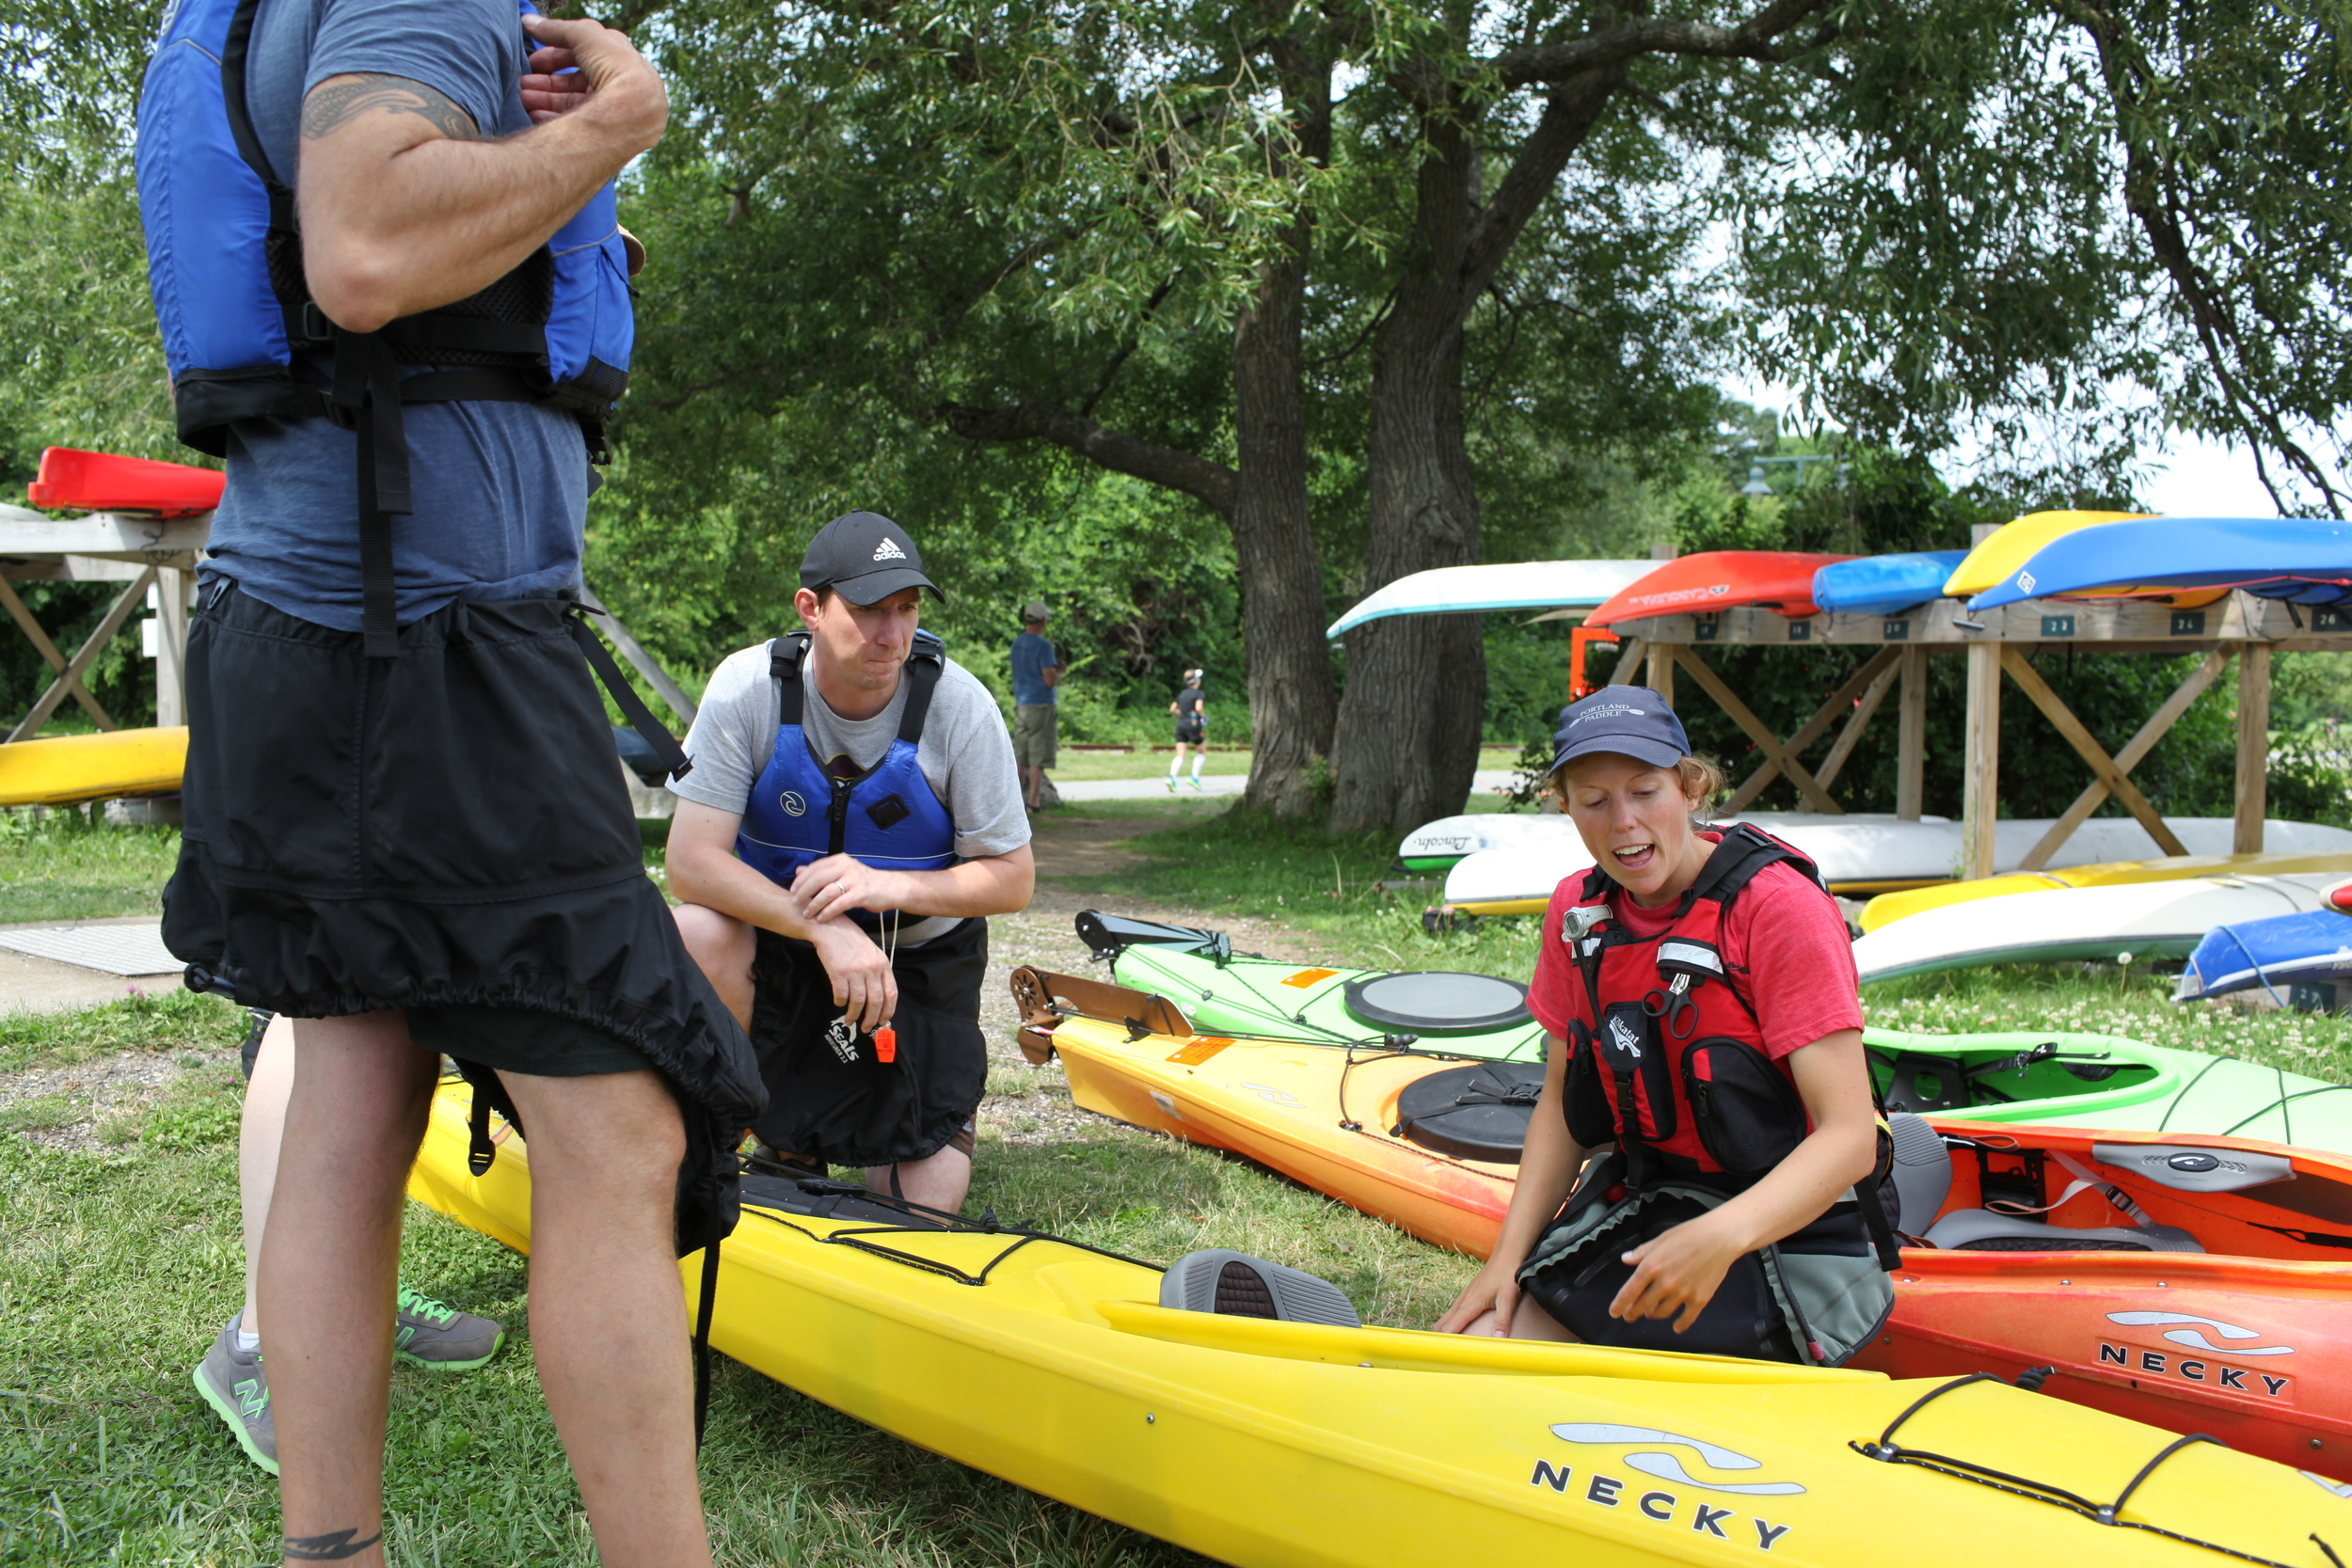 Giving a quick lesson on the parts of a sea kayak